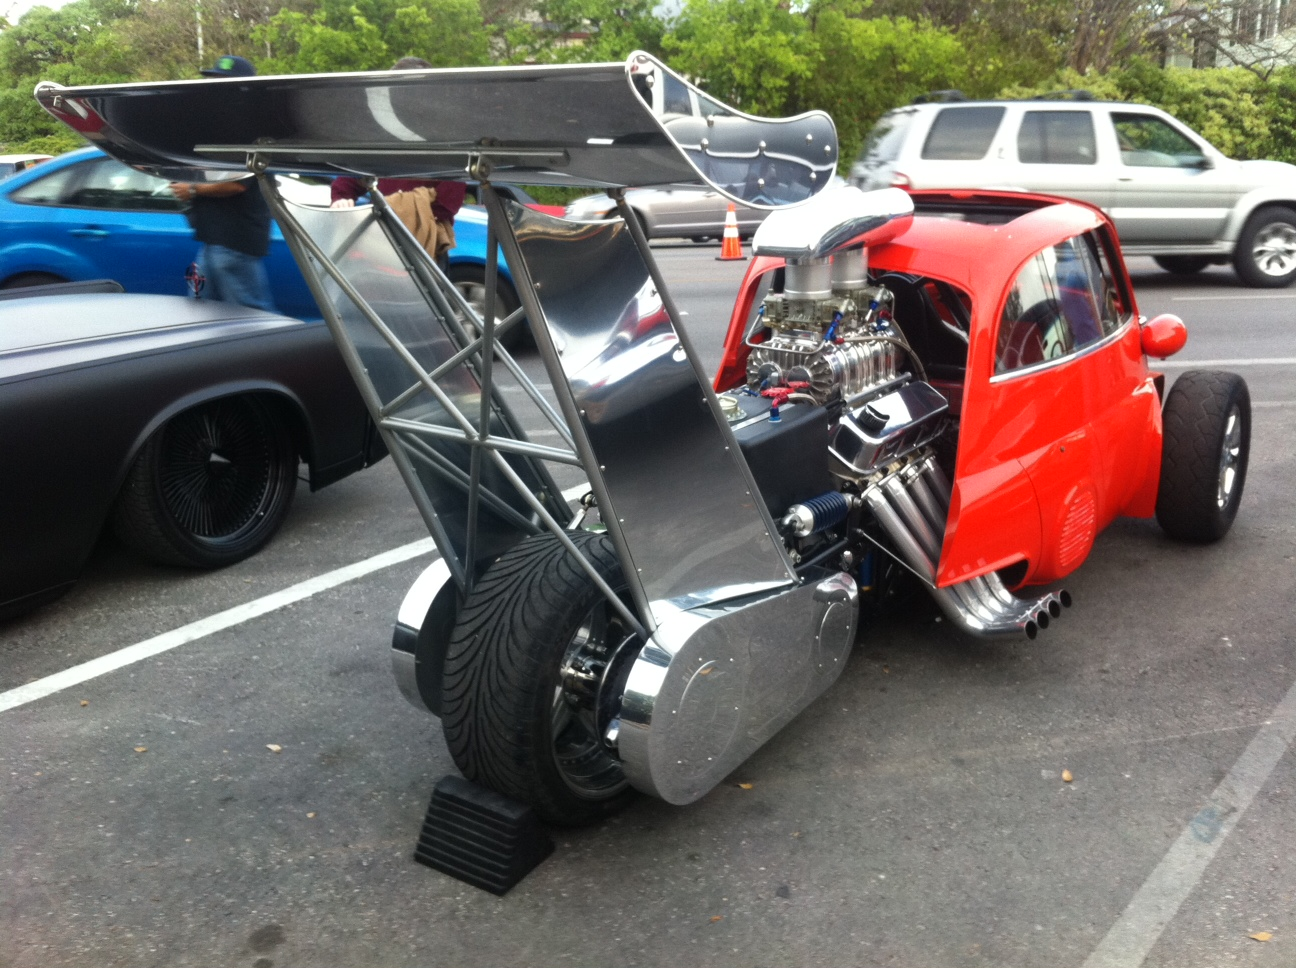 Craziest Hot Rod Ever, at Lonestar Round Up: Isetta Dragster